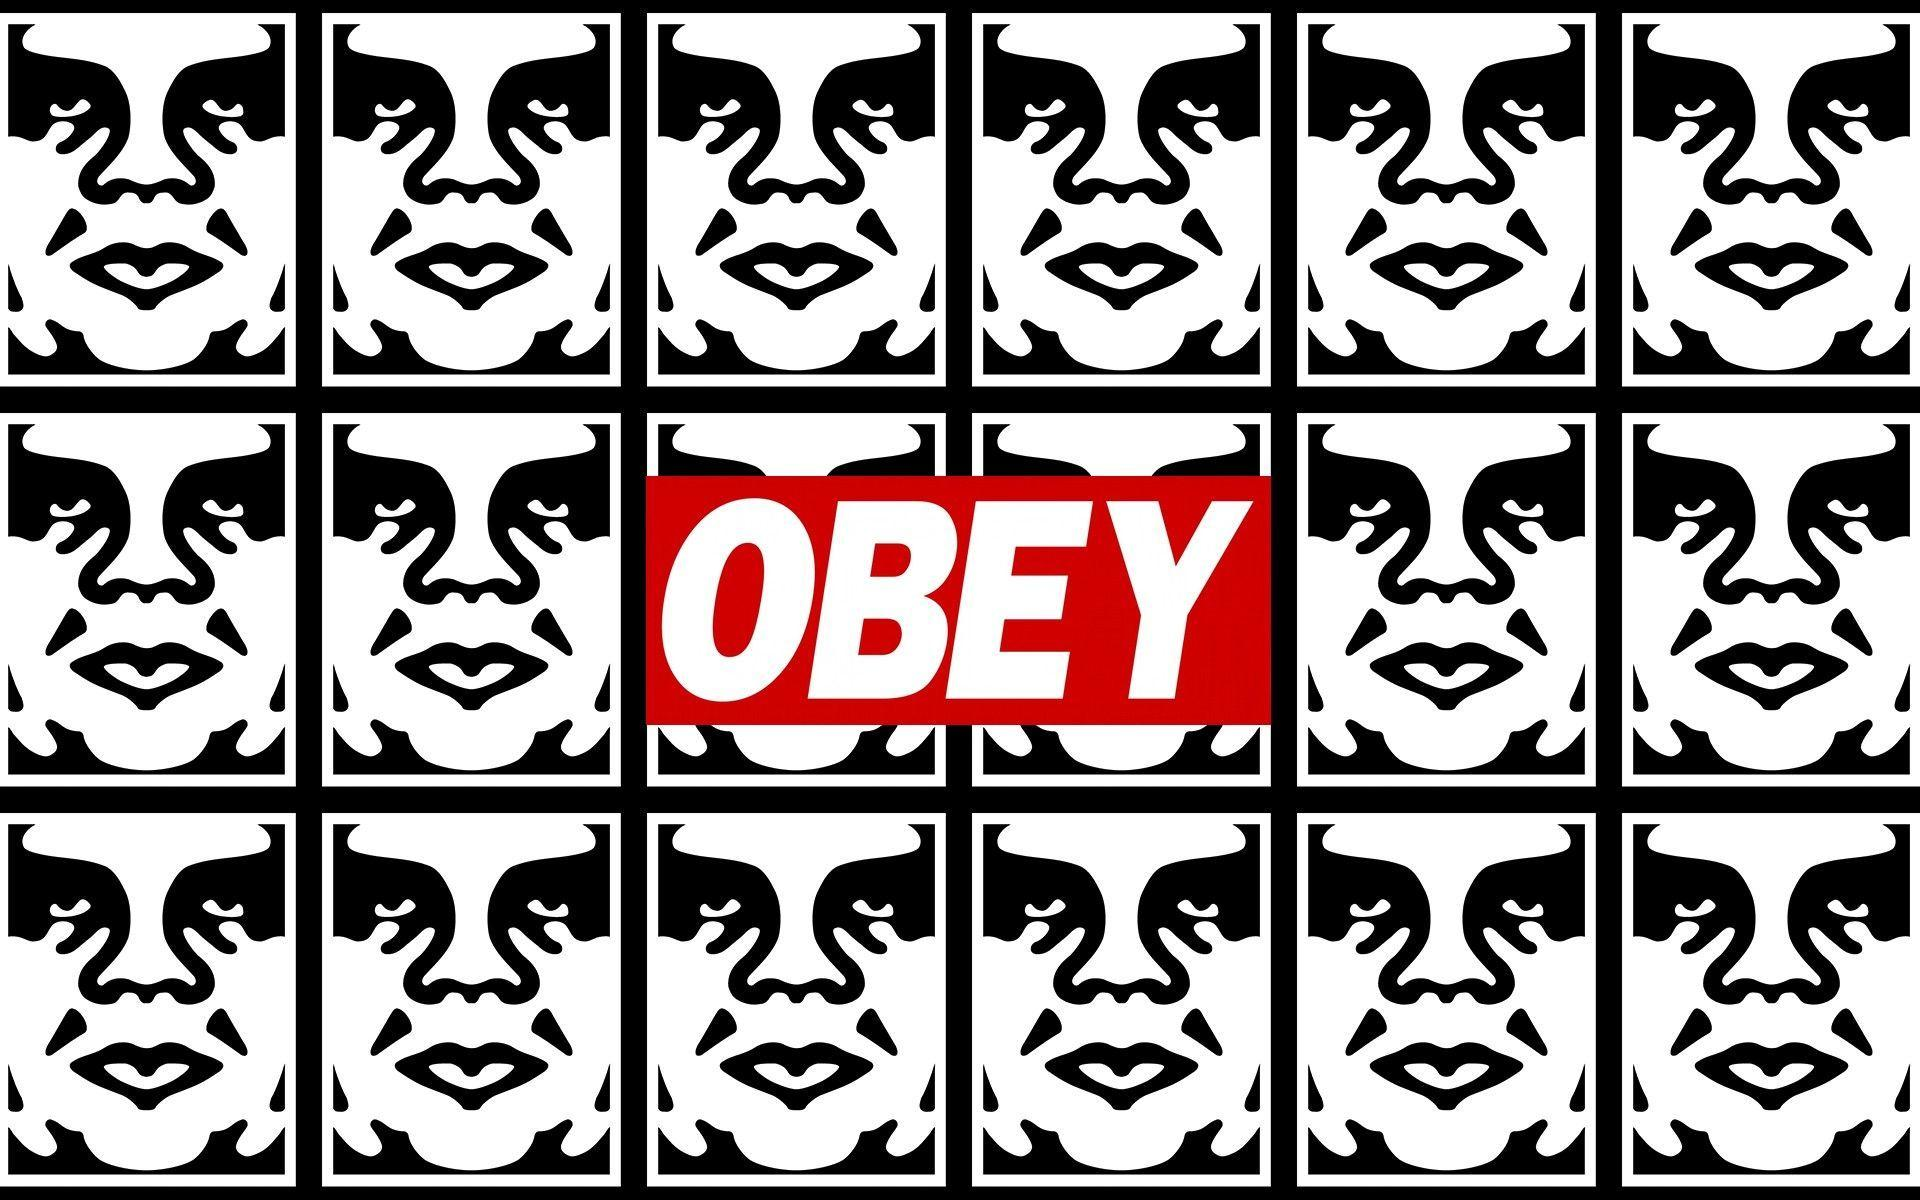 obey cool wallpapers 1920 - photo #5